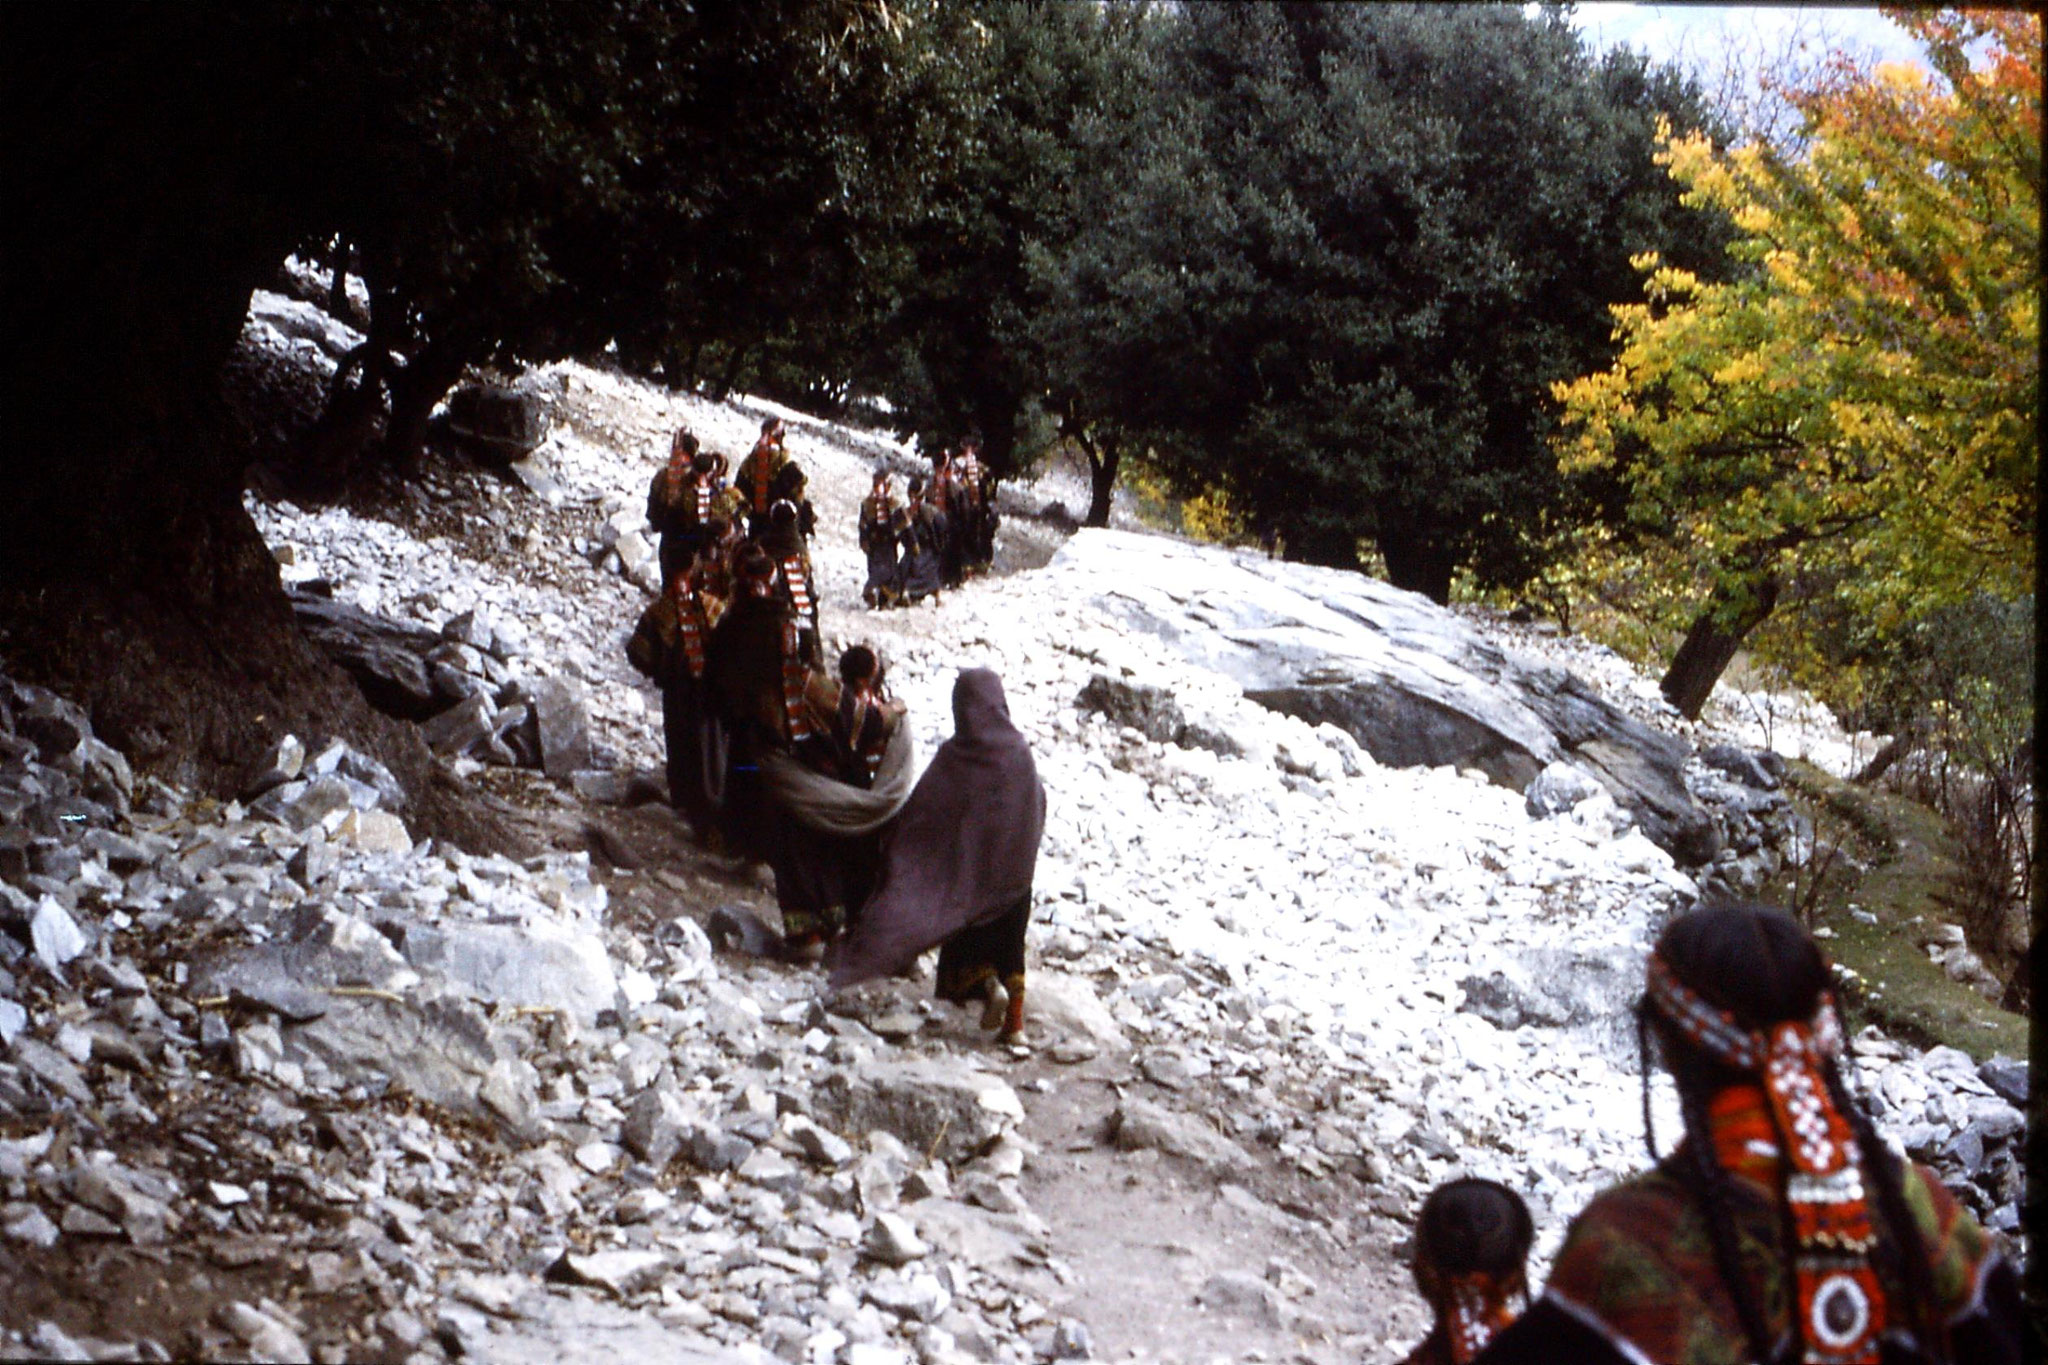 1/11/1989: 4: Kalash Valley, after bridal procession